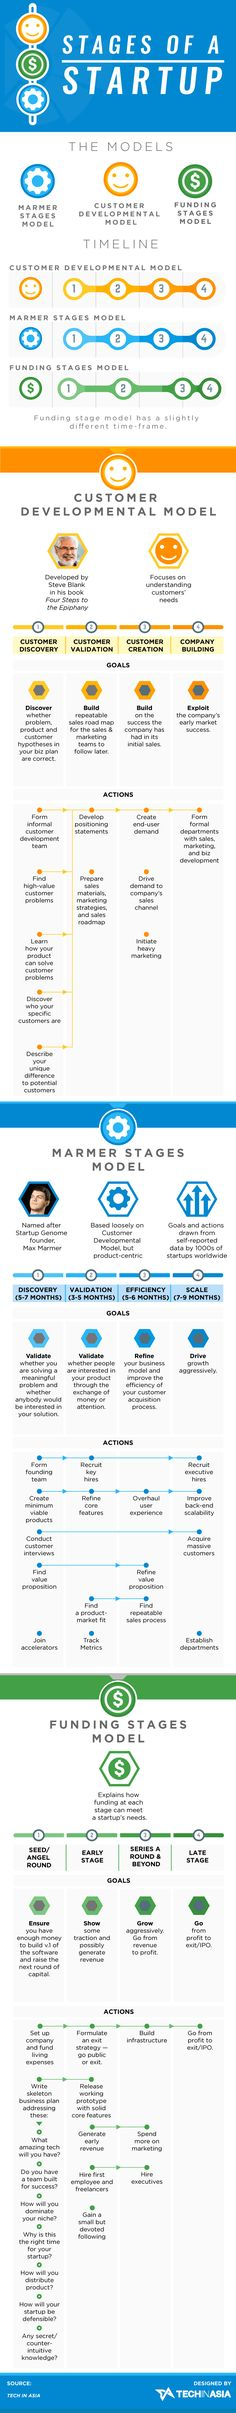 Stages of a startup (infographic)